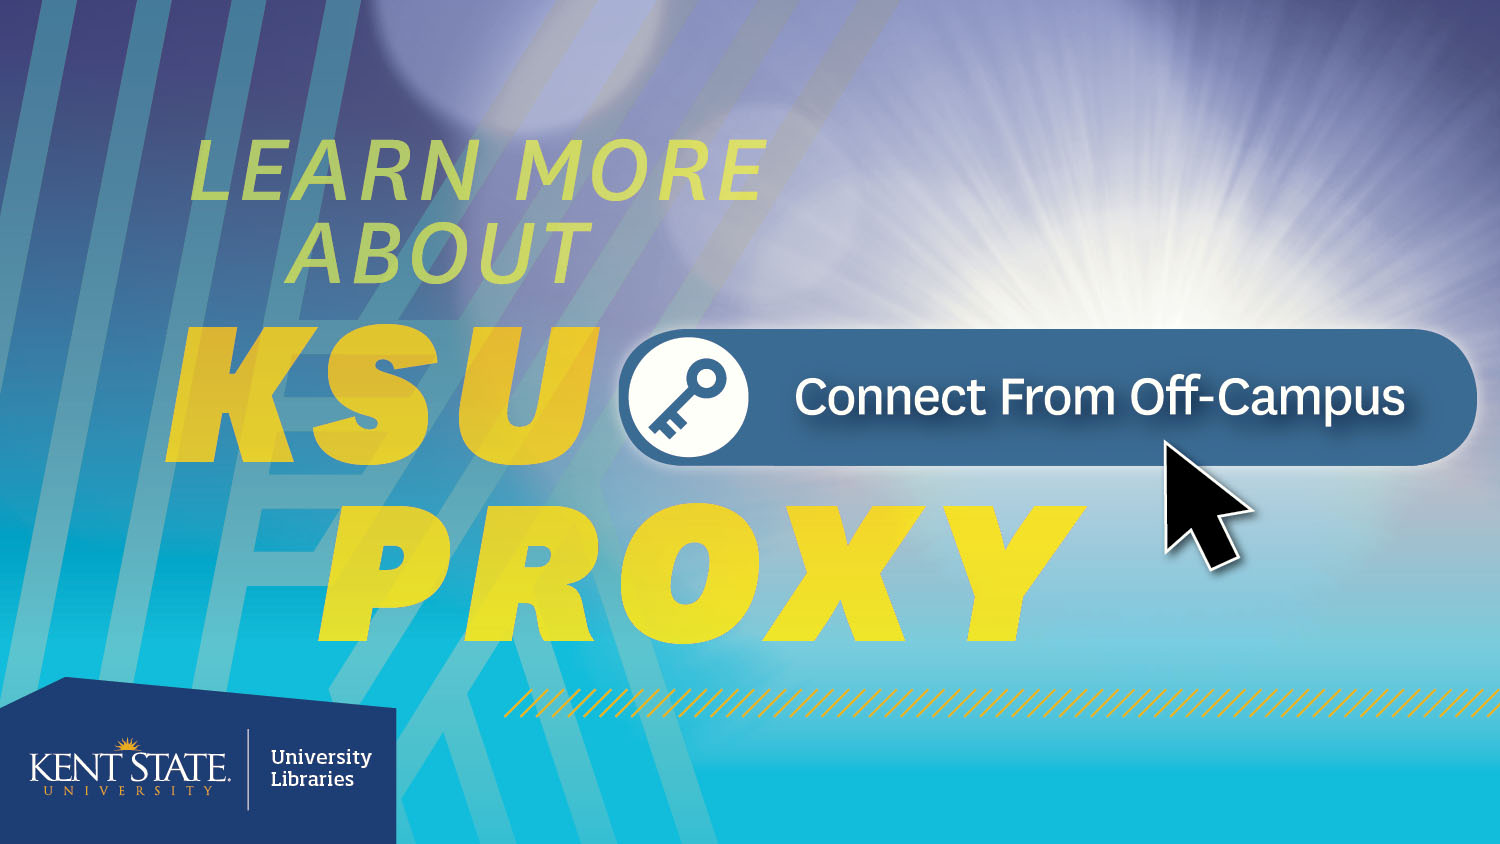 Show more about Learn More About KSU Proxy